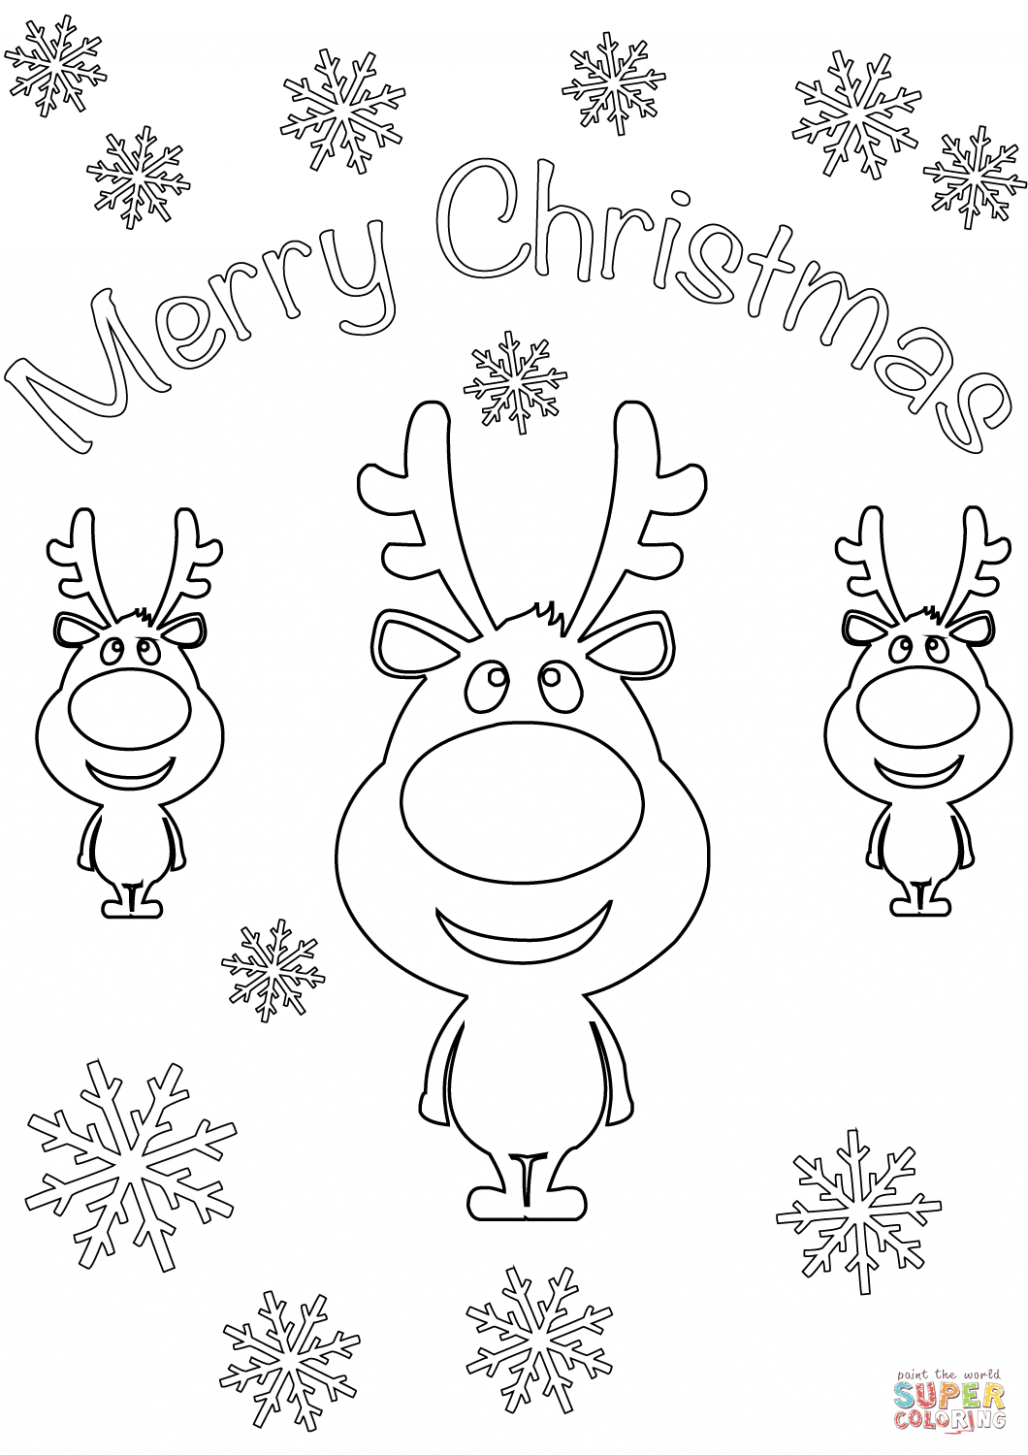 Merry Christmas Card with Cartoon Reindeers coloring page | Free ..